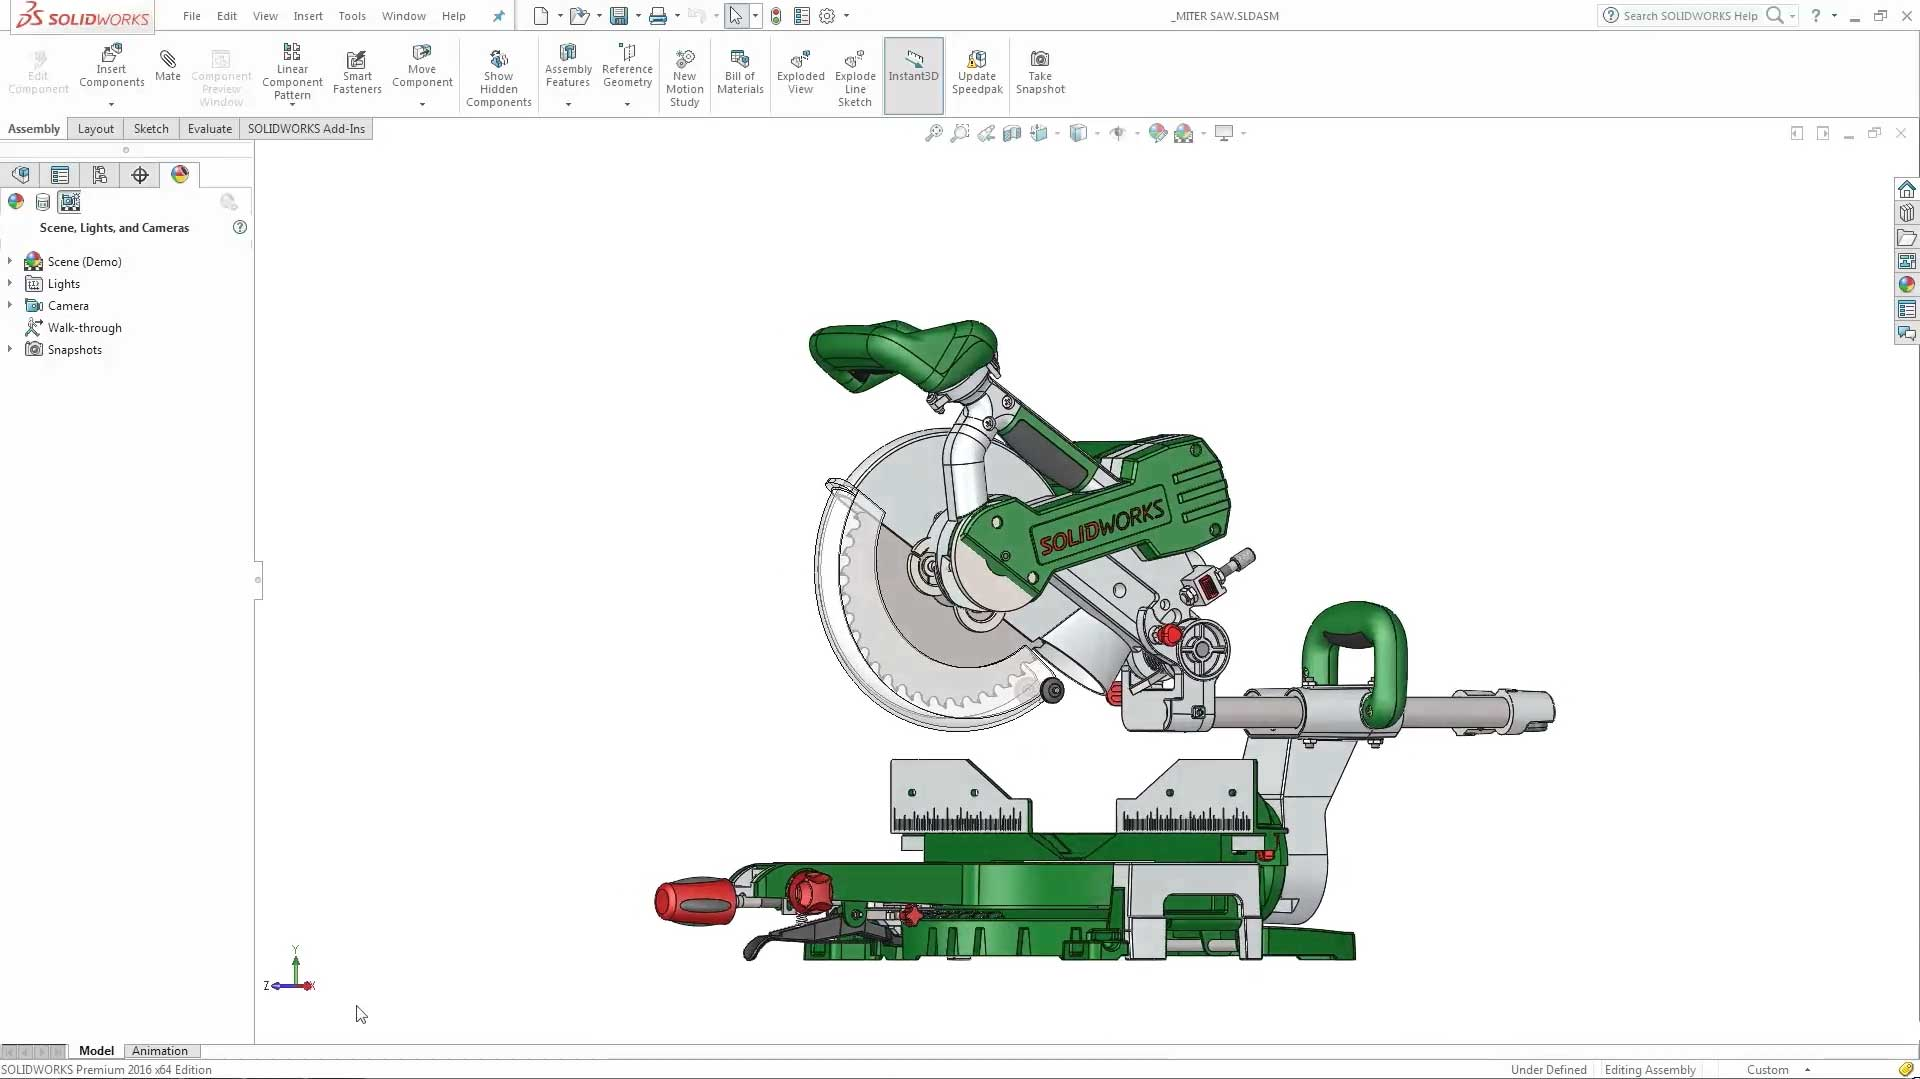 Solidworks Visualization Piping Diagram